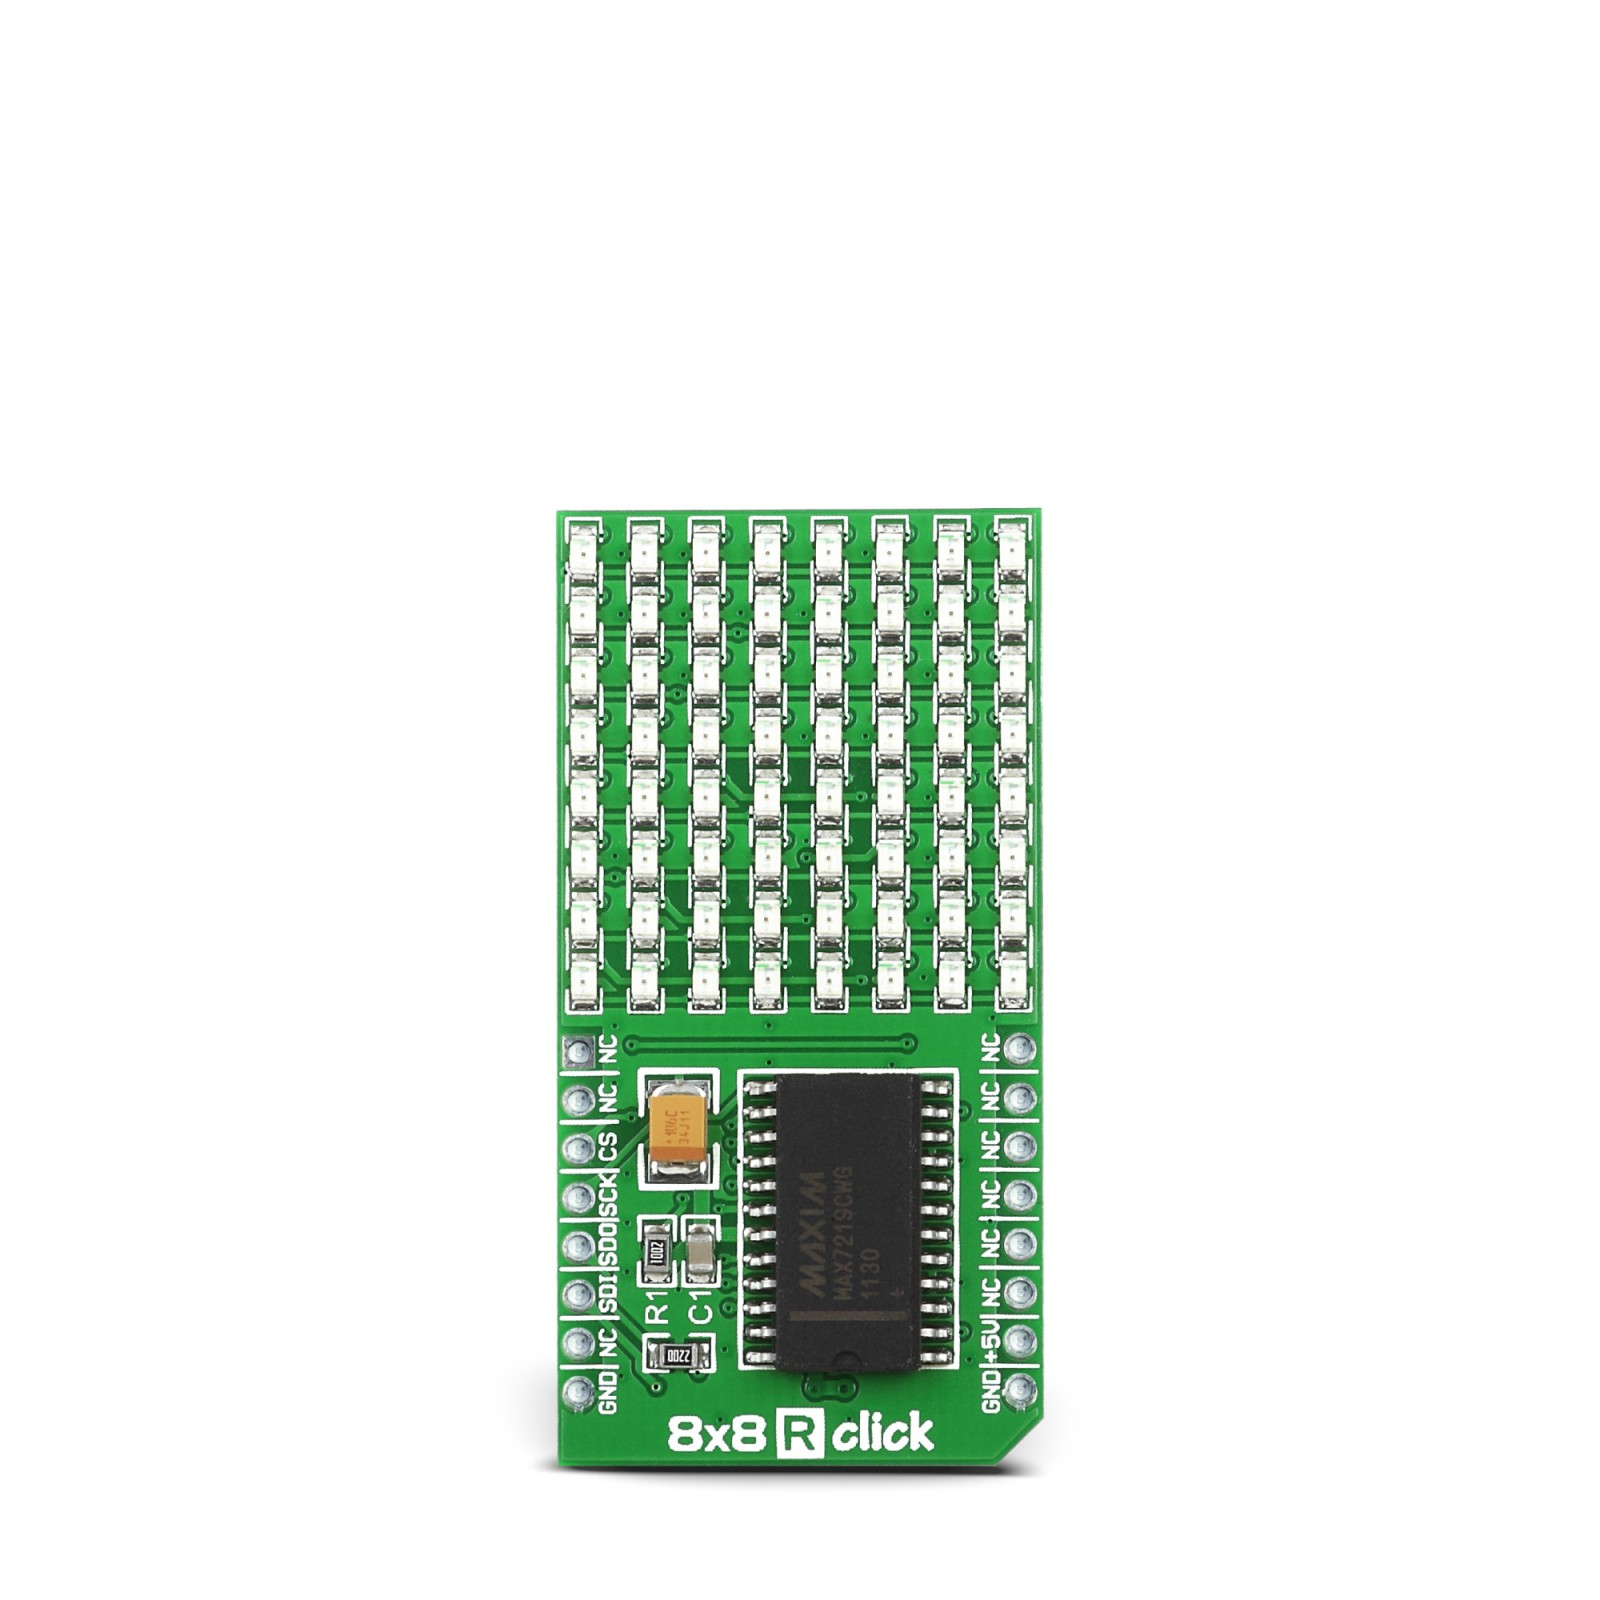 8x8 R Click - Serial 8x8 LED Matrix Display (RED)